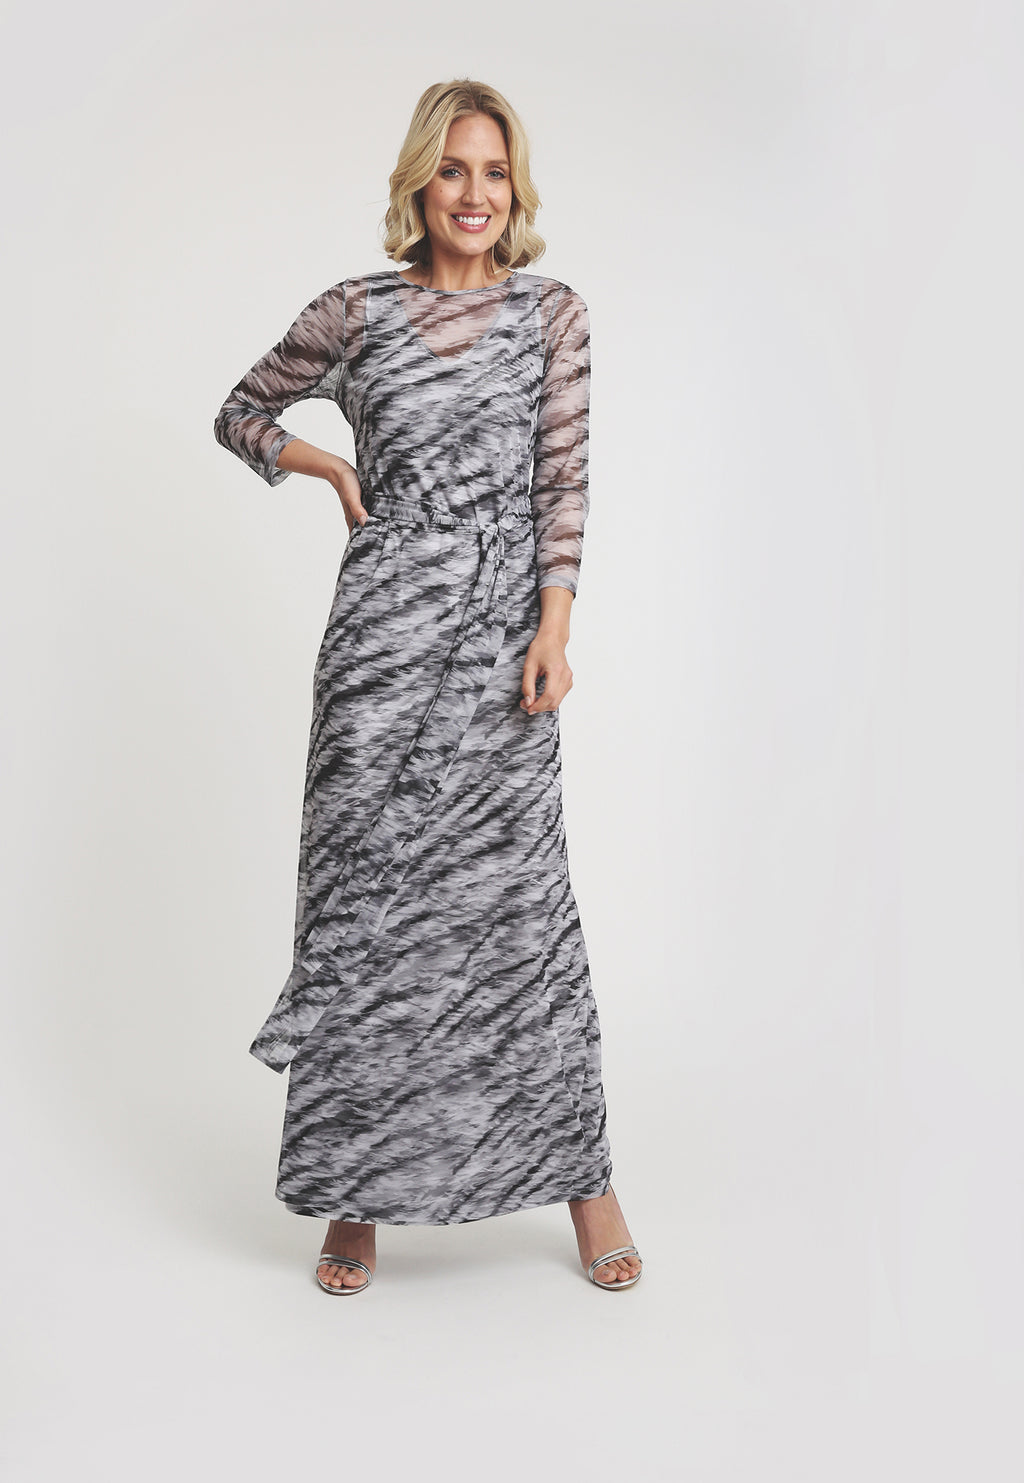 Loren Wrap Dress in Assam front view